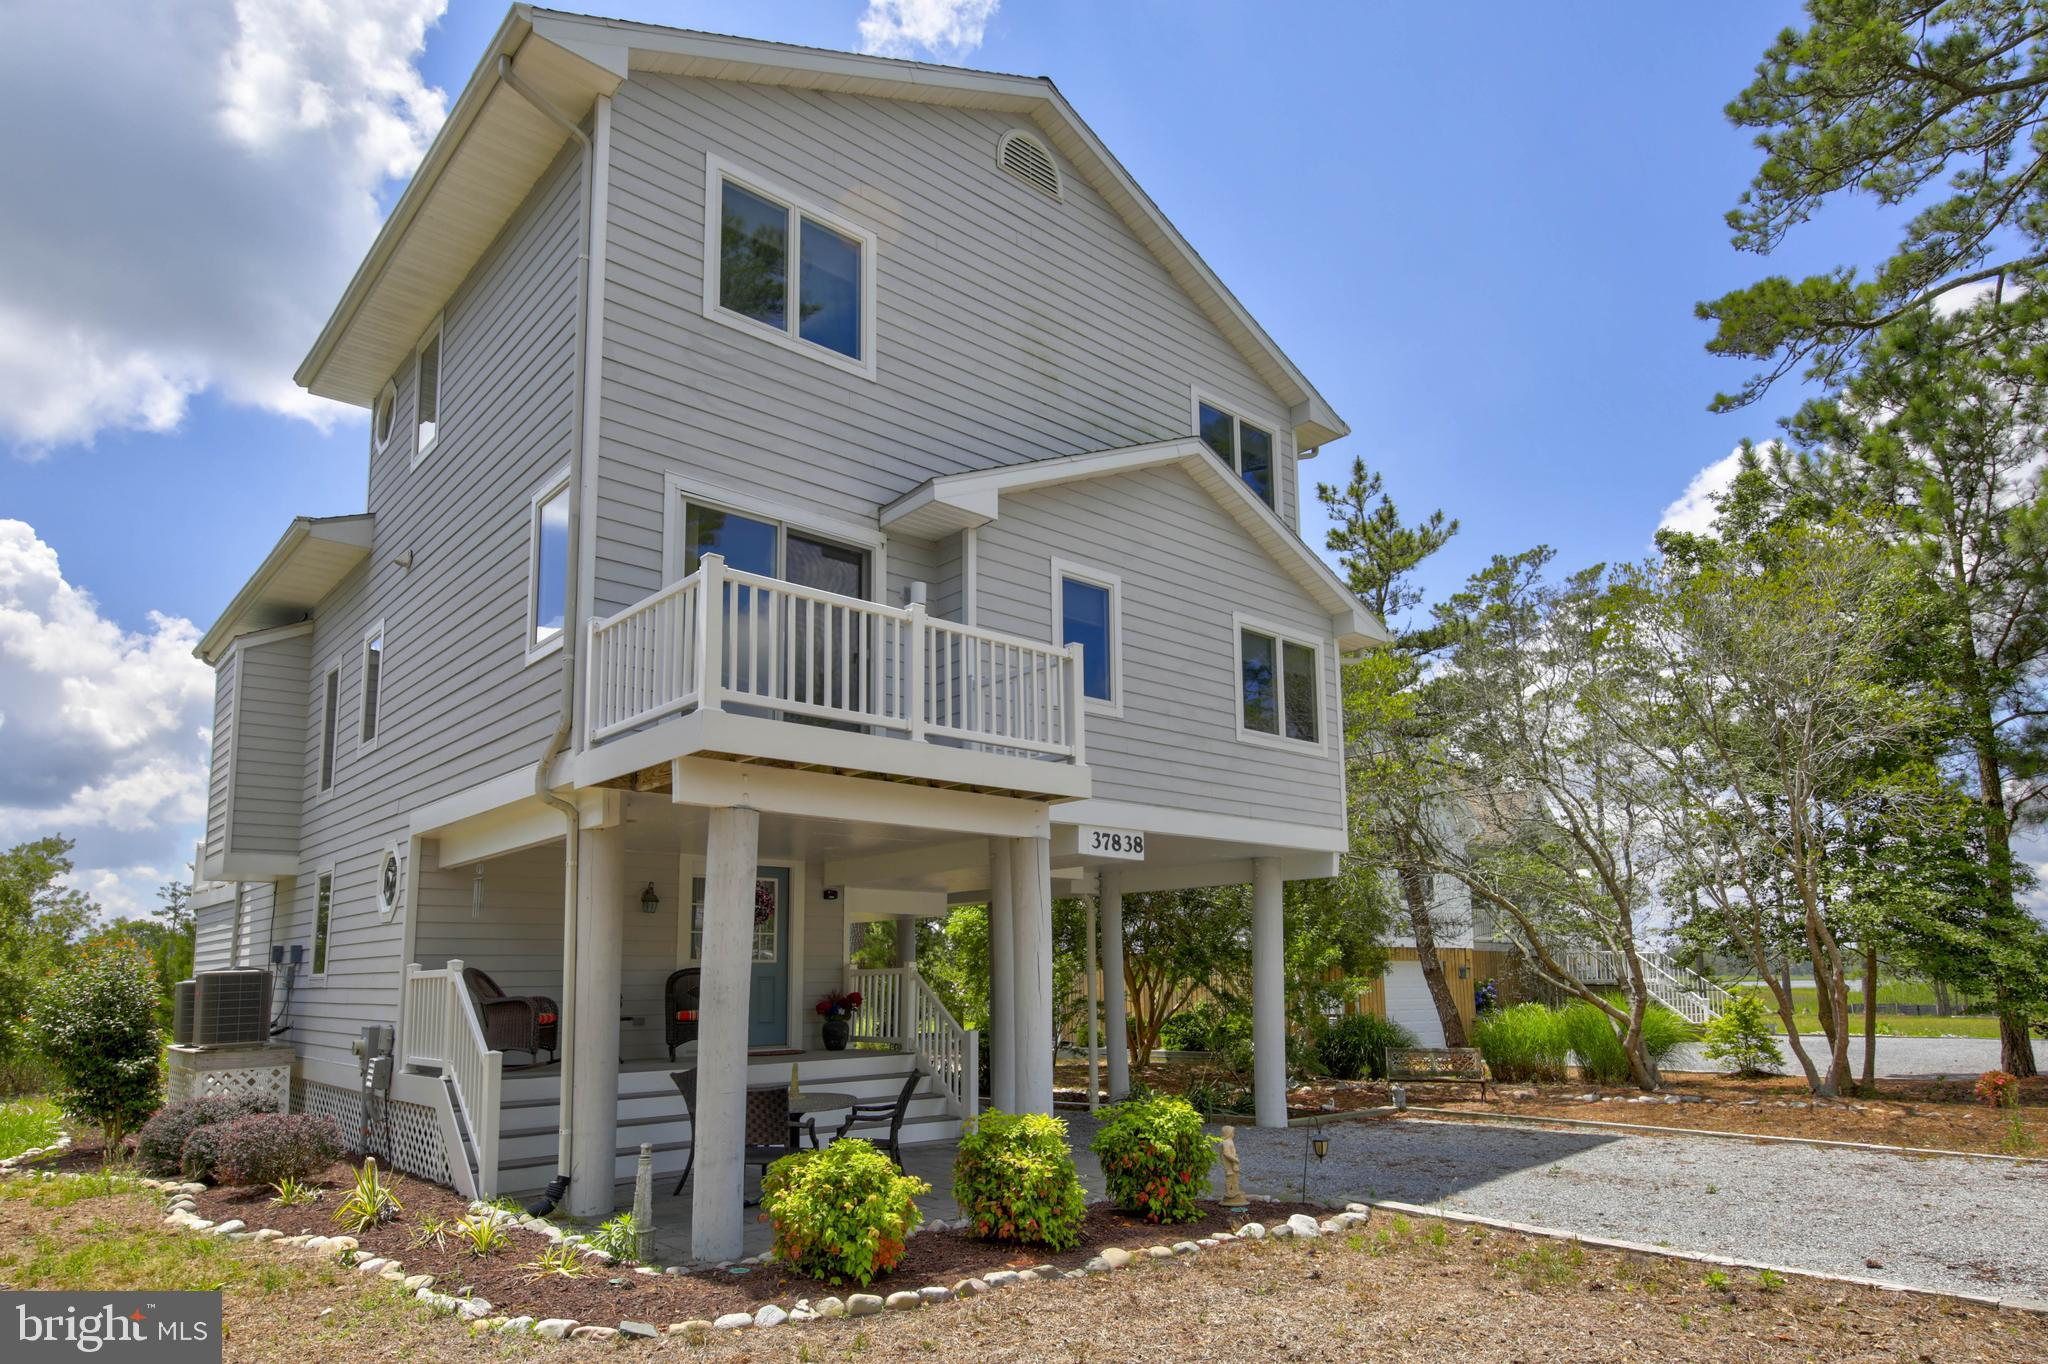 COASTAL. SPACIOUS. BEAUTIFUL. This fabulous four-bedroom, three bath home is nestled among the natural beauty of the wetlands and Bay in the much sought-after waterfront community of Cedar Landing. The outdoor decks provide fabulous views and the private walkway takes you to the water. The home features a reverse floor plan with a foyer and bonus room on the lower level. The open floor plan on the main level boasts high ceilings, a year-round sunroom, and a deck with an attached awning which provides a wonderful shaded space for living, relaxing, and entertaining. The tiled kitchen has updated stainless steel appliances and features ample dining space. The large bedrooms are light and airy and the master bedroom has a beautiful private bath. The wonderful loft area on the upper level provides additional living space for entertaining and the two bedrooms are spacious and private. The home also has a large outdoor shower and a secure shed to store all your beach gear, bikes, etc. The Cedar Landing community has easy access to a private residents' boat ramp for powered boats, kayaks, and personal watercraft in addition to a pool and tennis courts. Truly resort style year-round living in a secluded beautiful community that is close to Bethany Beach, restaurants, shopping, night life, and more. Make this your dream home today!